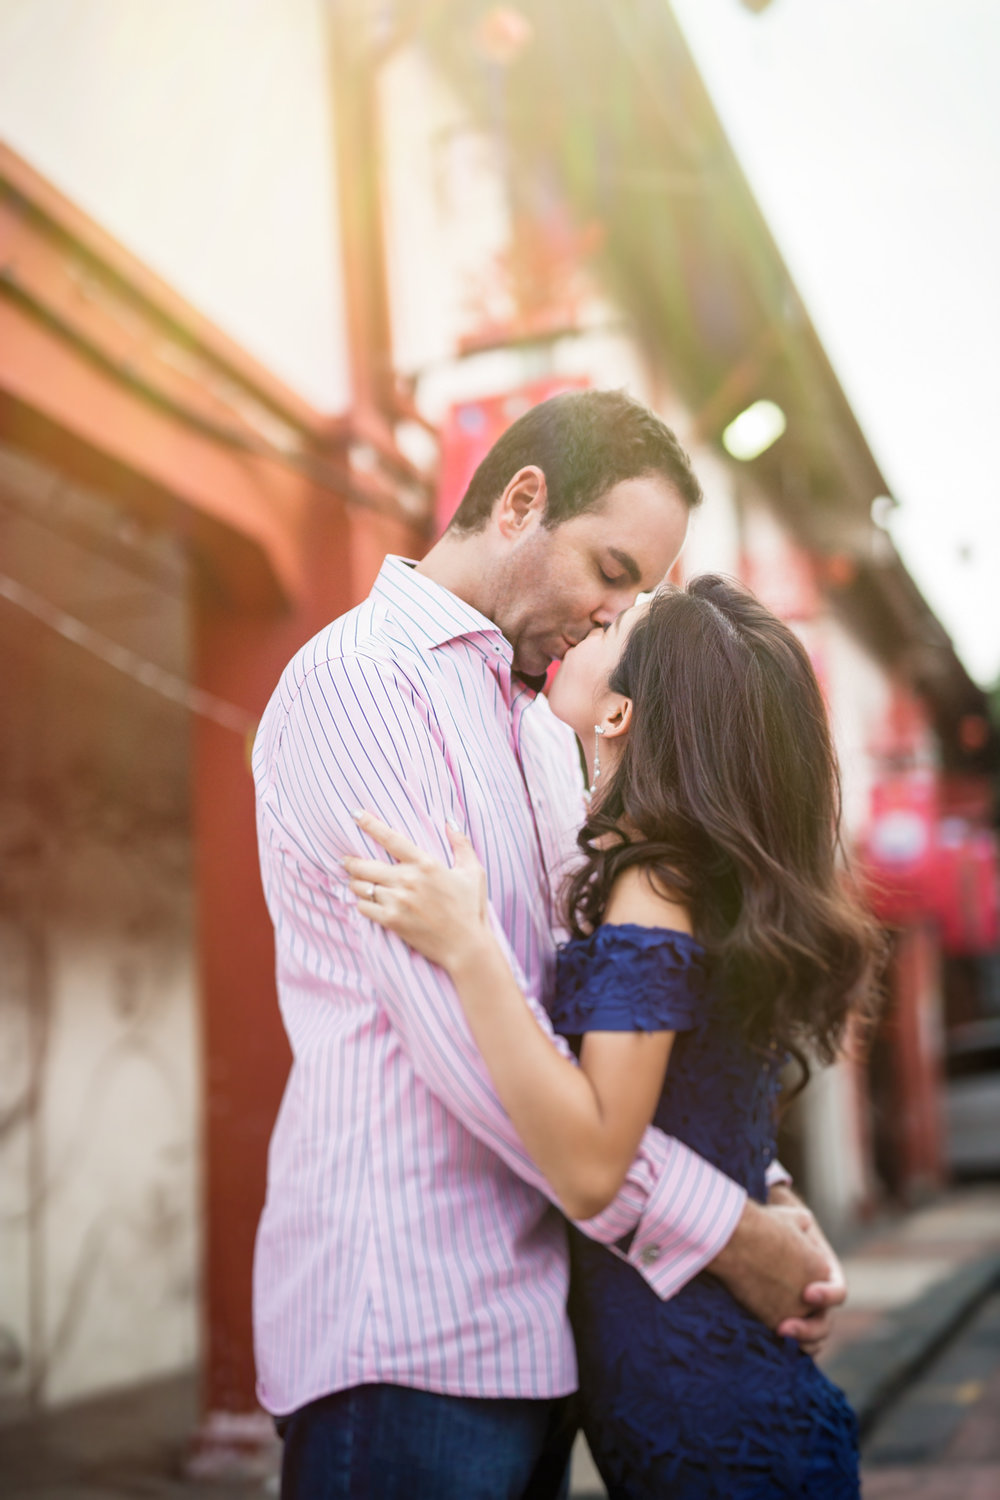 And wrapping things off here with a lovely shot of Sylvain & Jiebei. Hope you all enjoyed their pre-wedding photos! :)